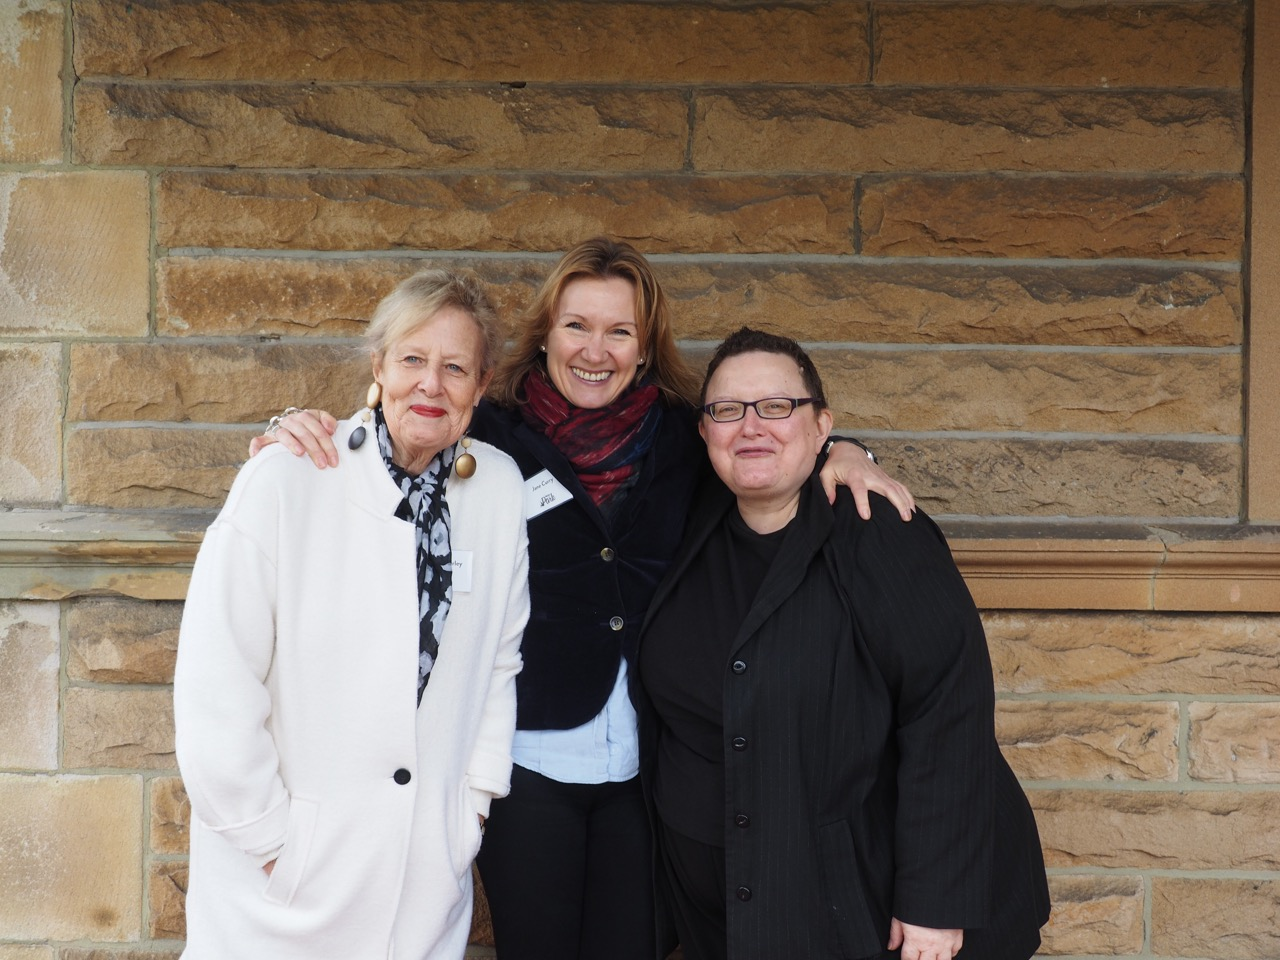 Publisher Jane Curry with Annabel Morley and Maria Katsonis. Photo by John Grant.